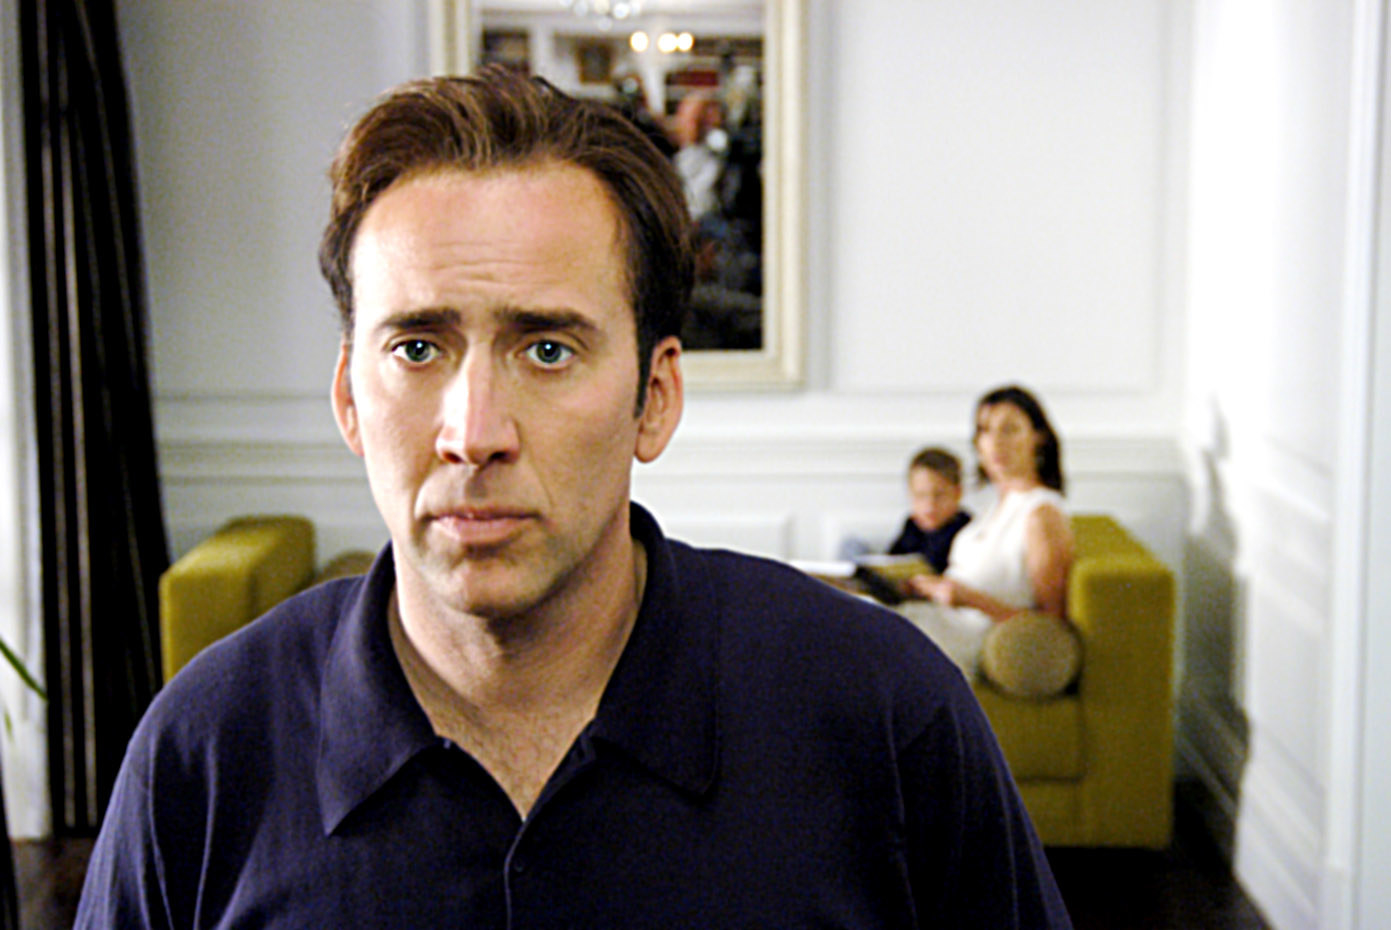 Nicolas Cage in 2005's Lord of War